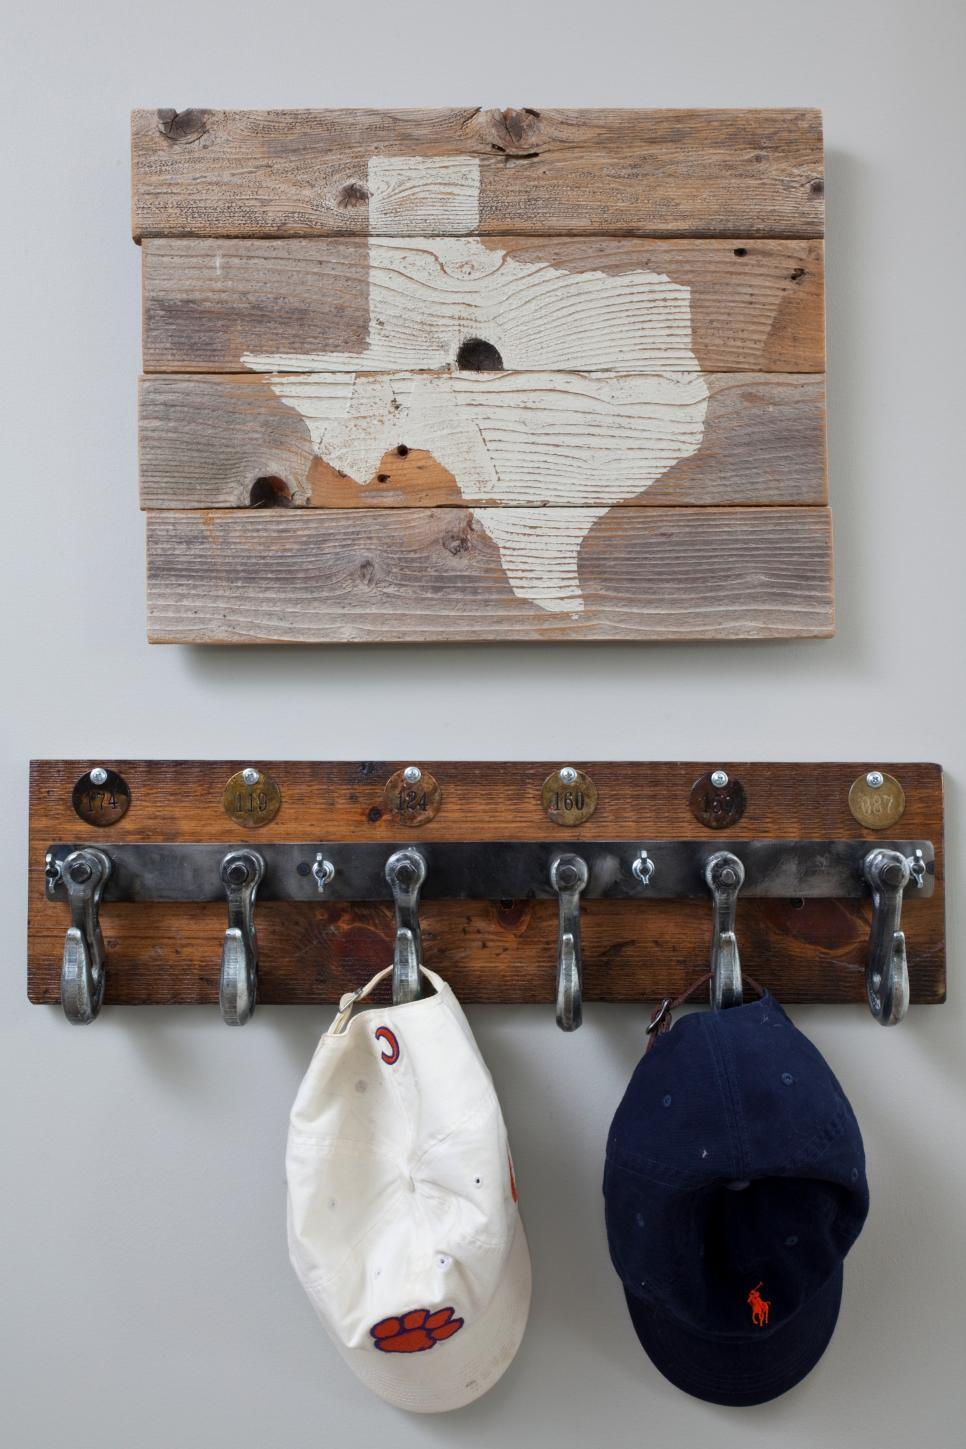 Hat Rack on Wall